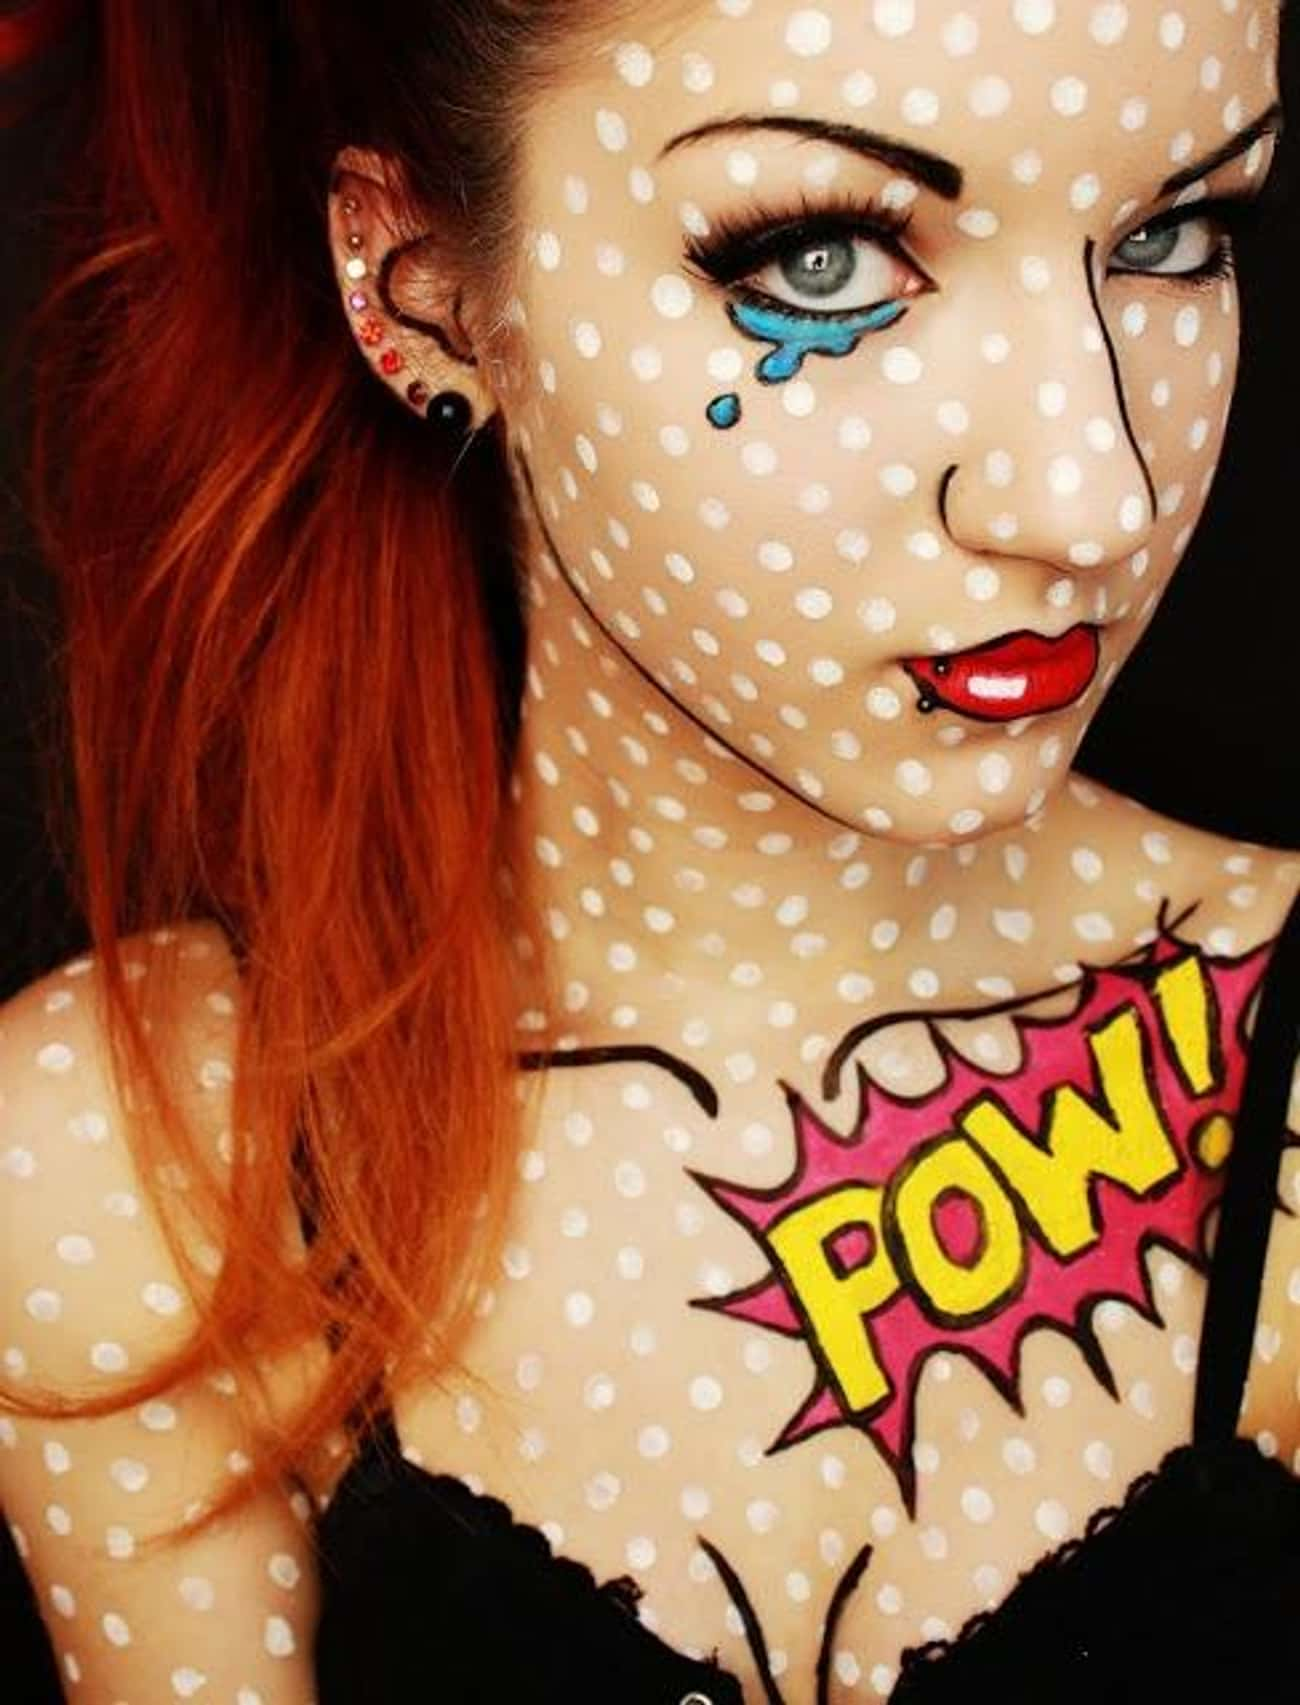 Pop Art Comic is listed (or ranked) 2 on the list 30+ Special Effects Makeup Transformations